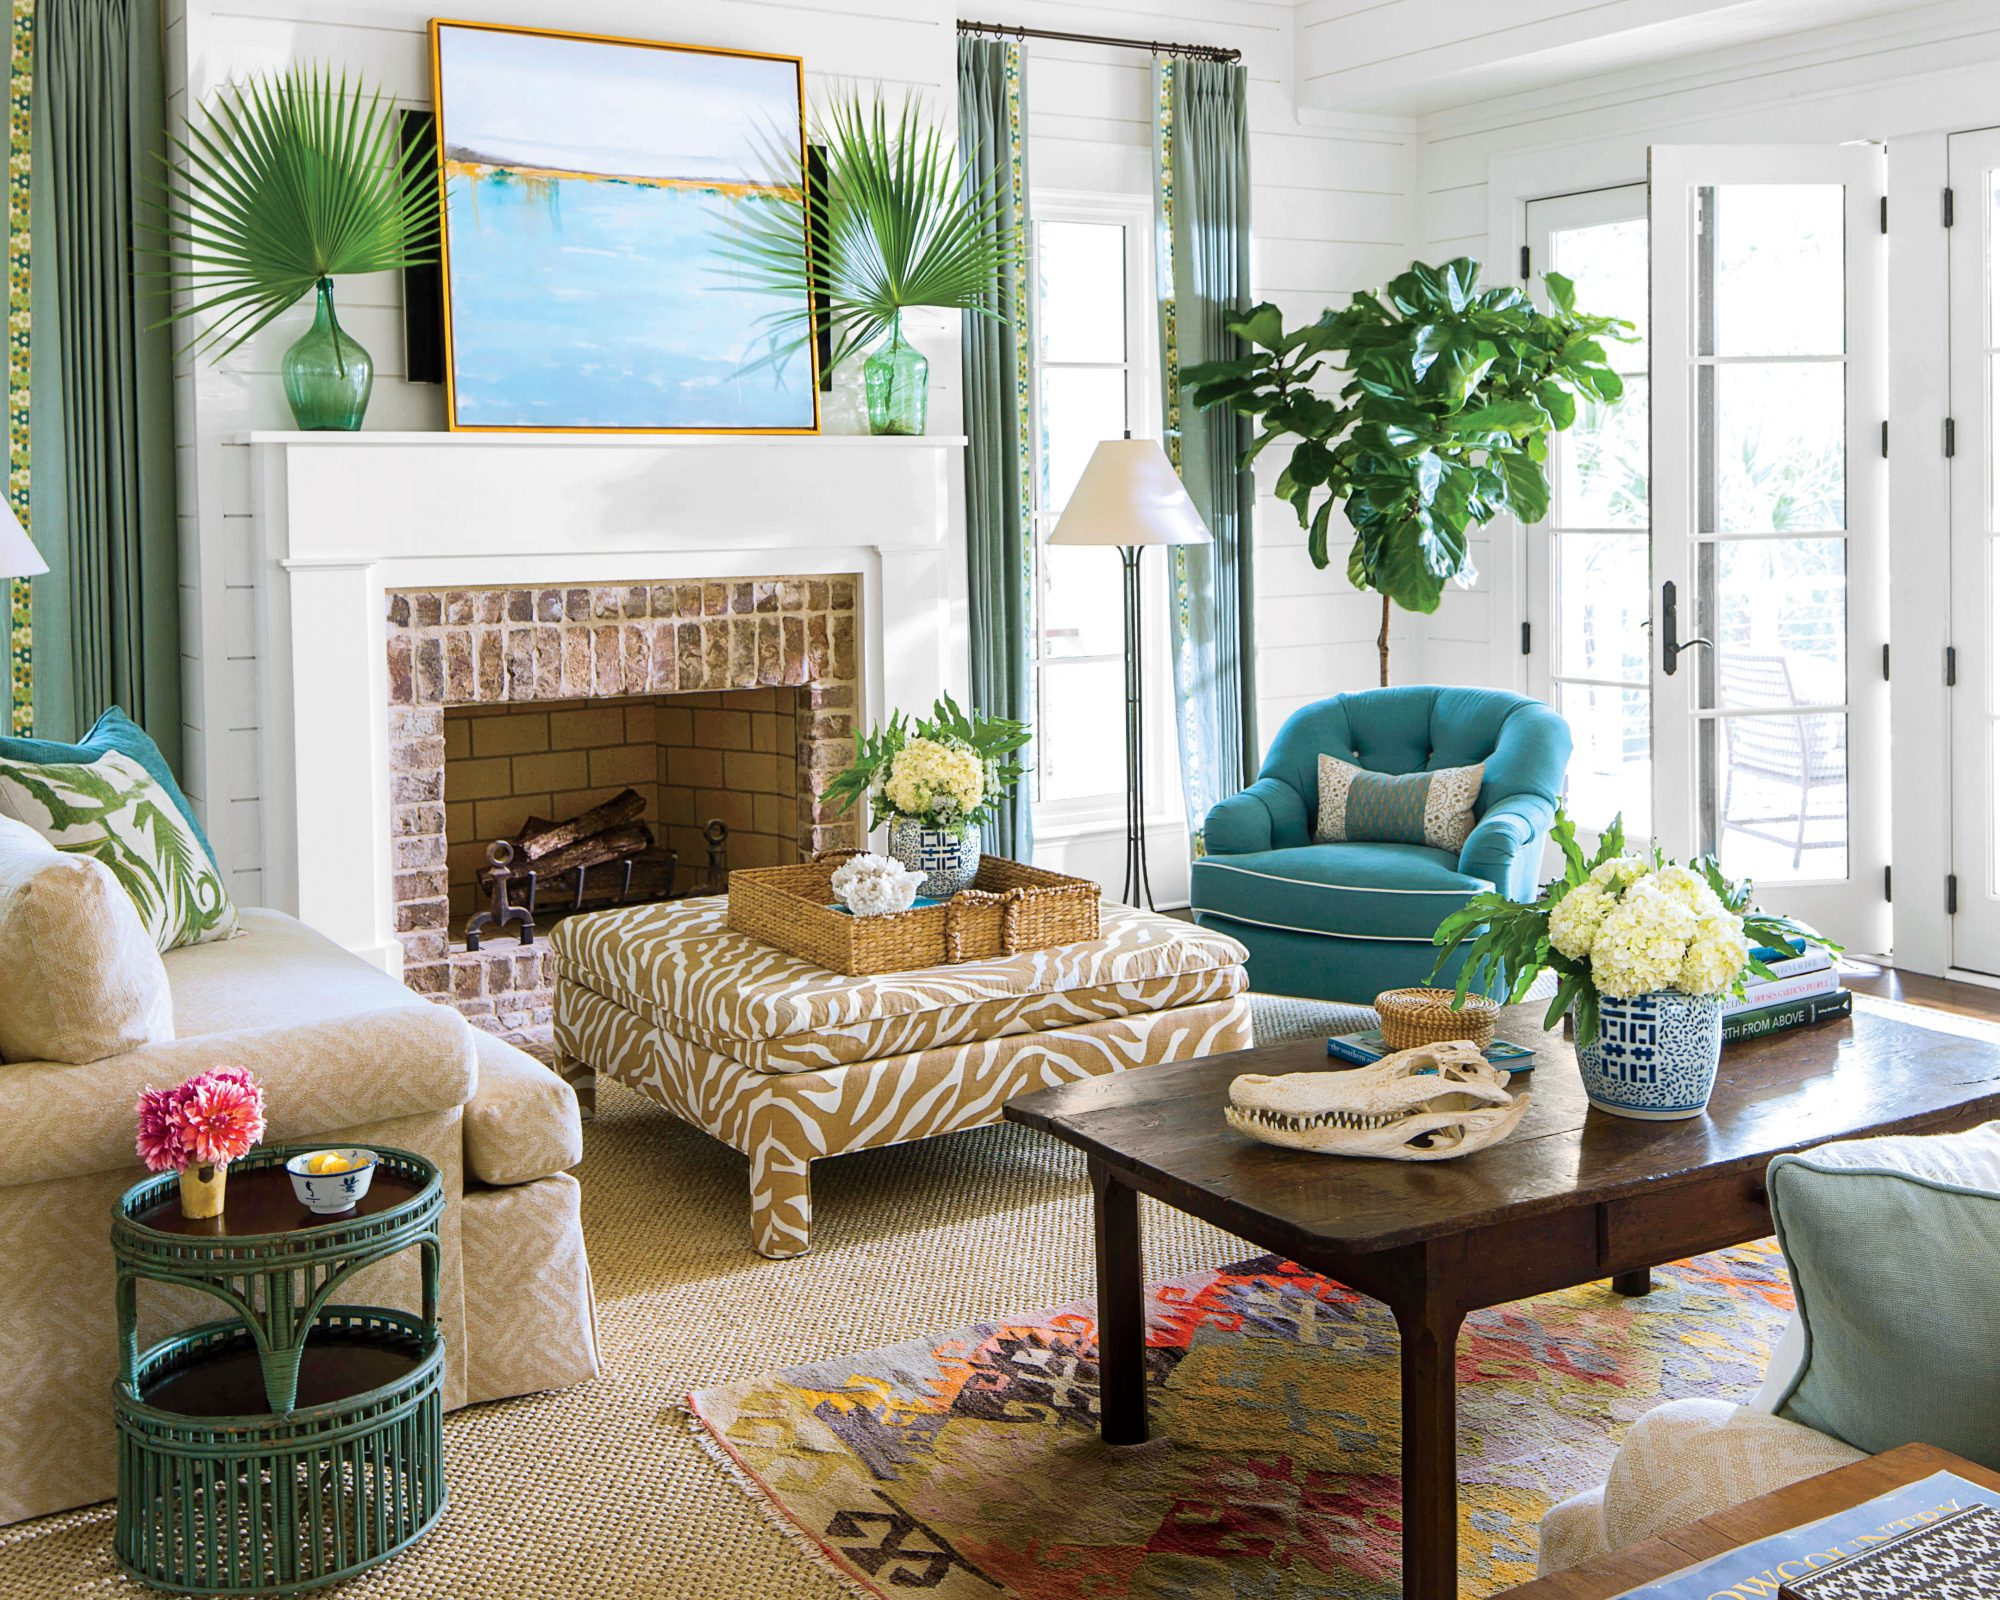 Interior design ideas living room Incredible Coastal Lowcountry Living Room Southern Living 106 Living Room Decorating Ideas Southern Living